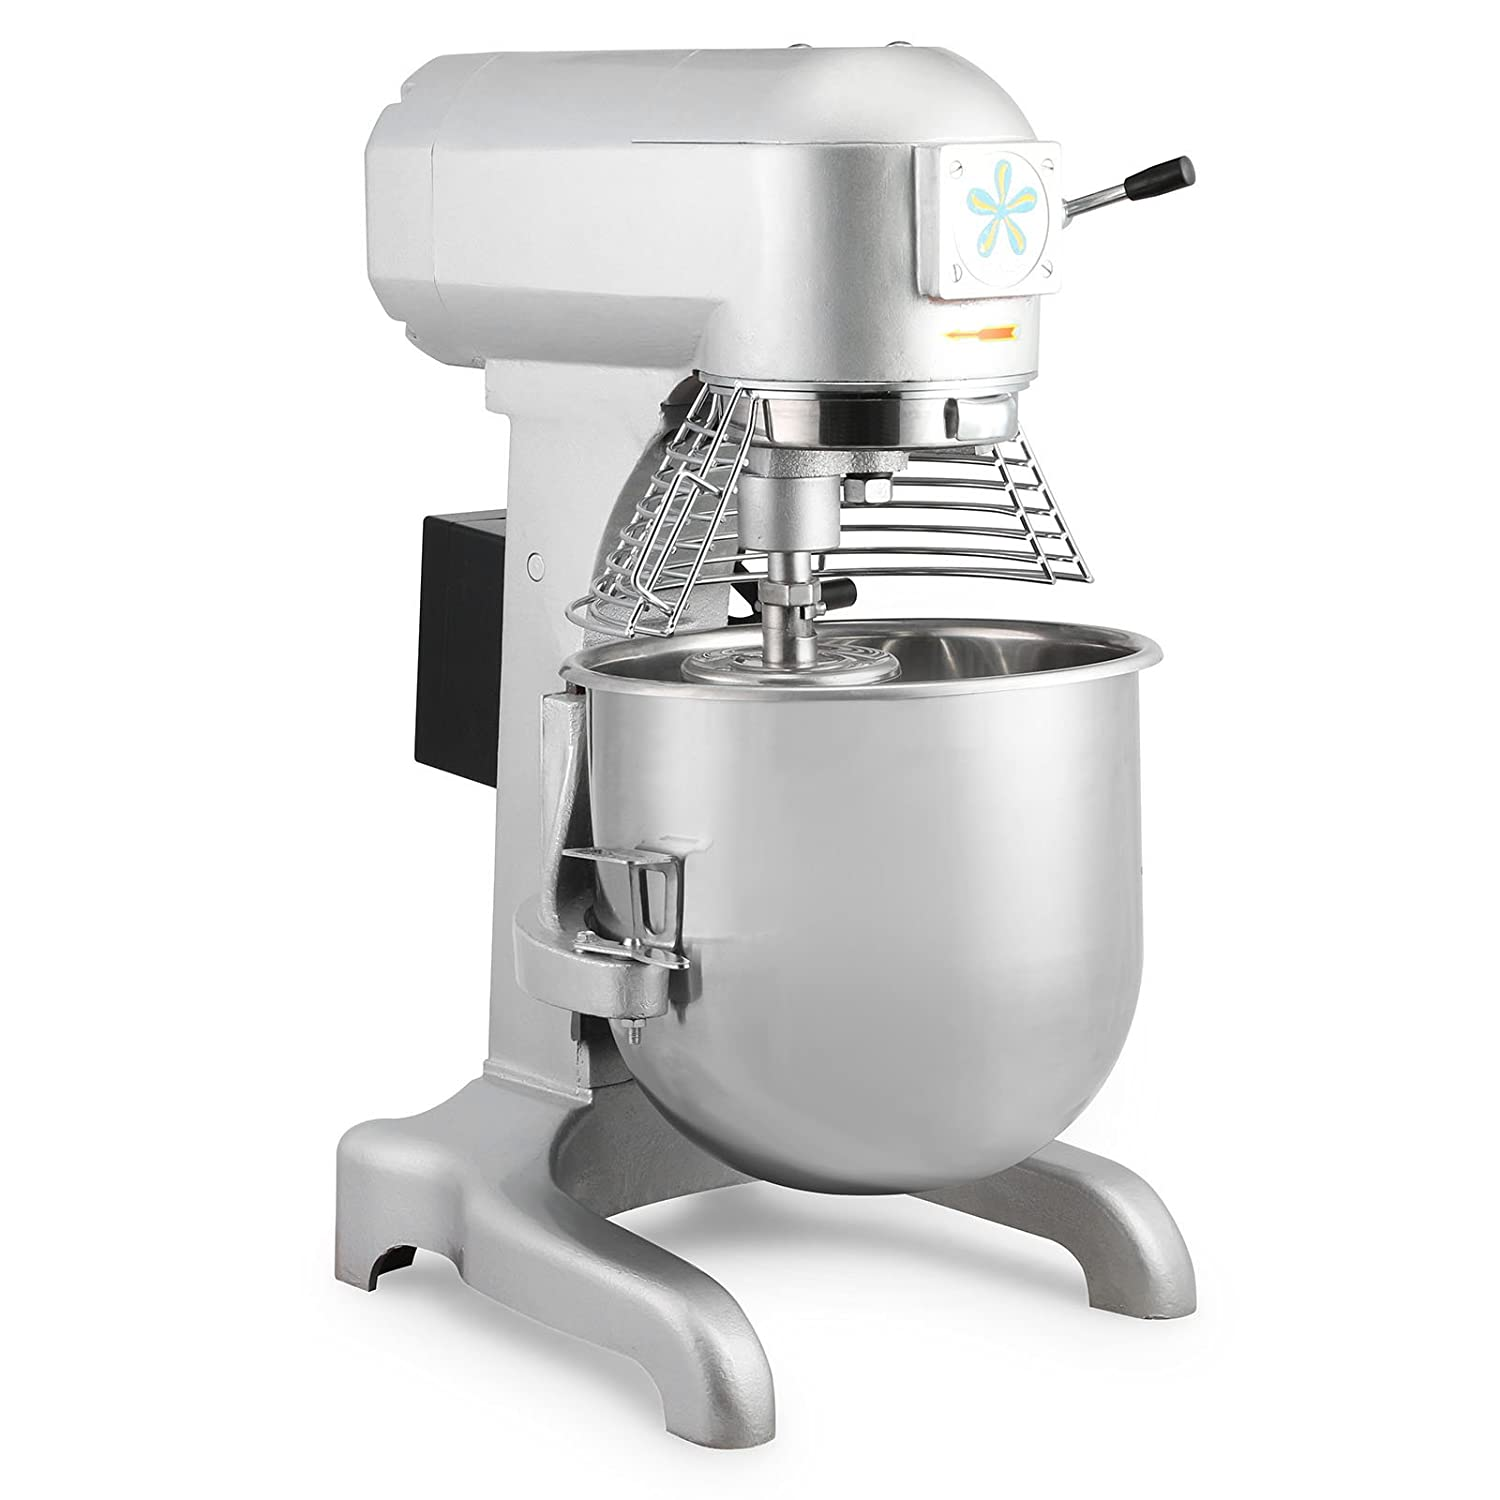 HPcutter Batidora Amasadora Procesador de Alimentos Food Mixer Commercial Food Mixer 20L 750W Electric Dough Mixer with 3 Agitator Attachments (20L): ...